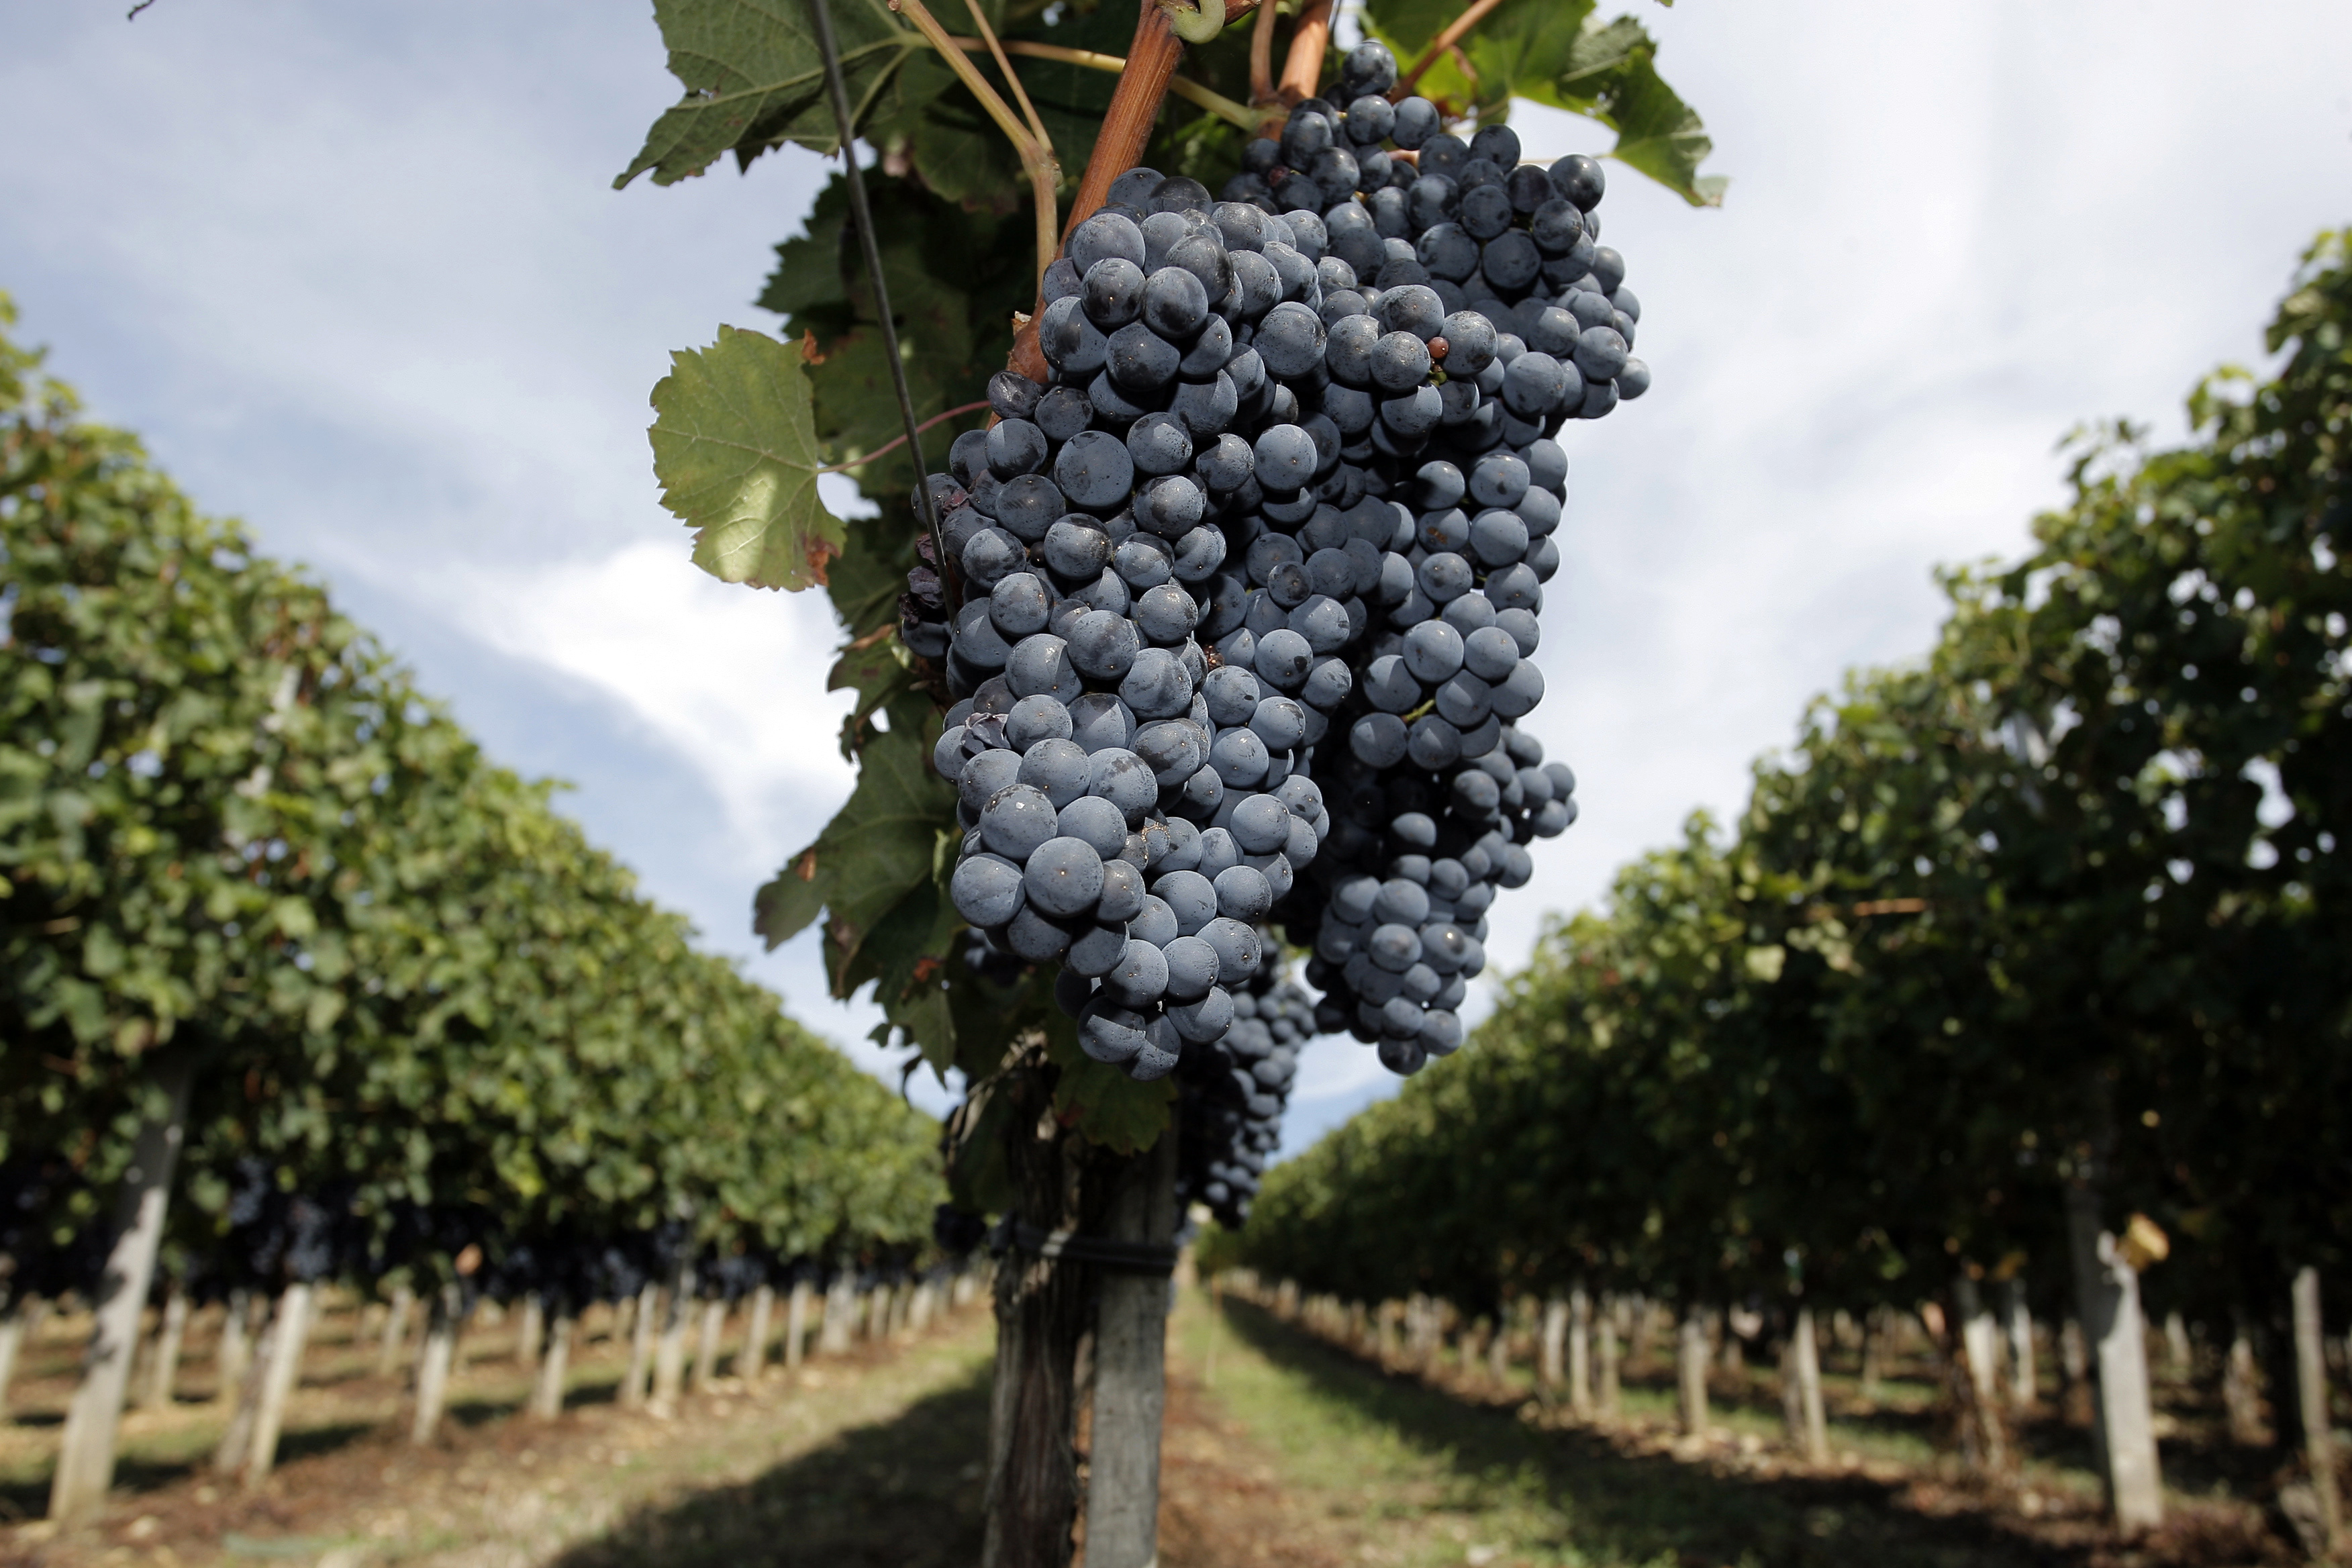 FRANCE-FINANCE-AGRICULTURE-WINE